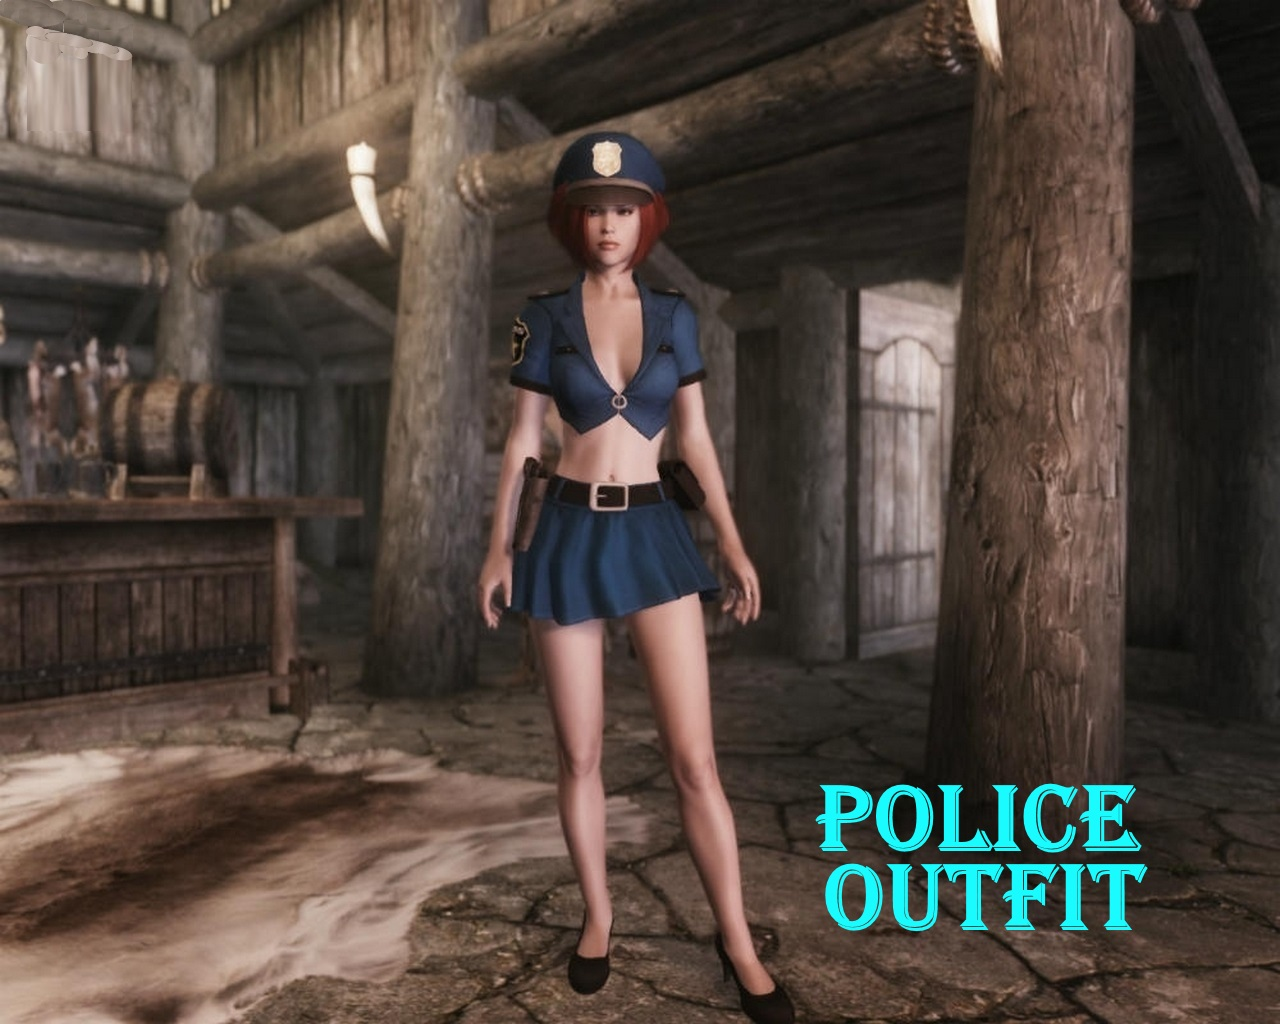 Police_outfit.jpg